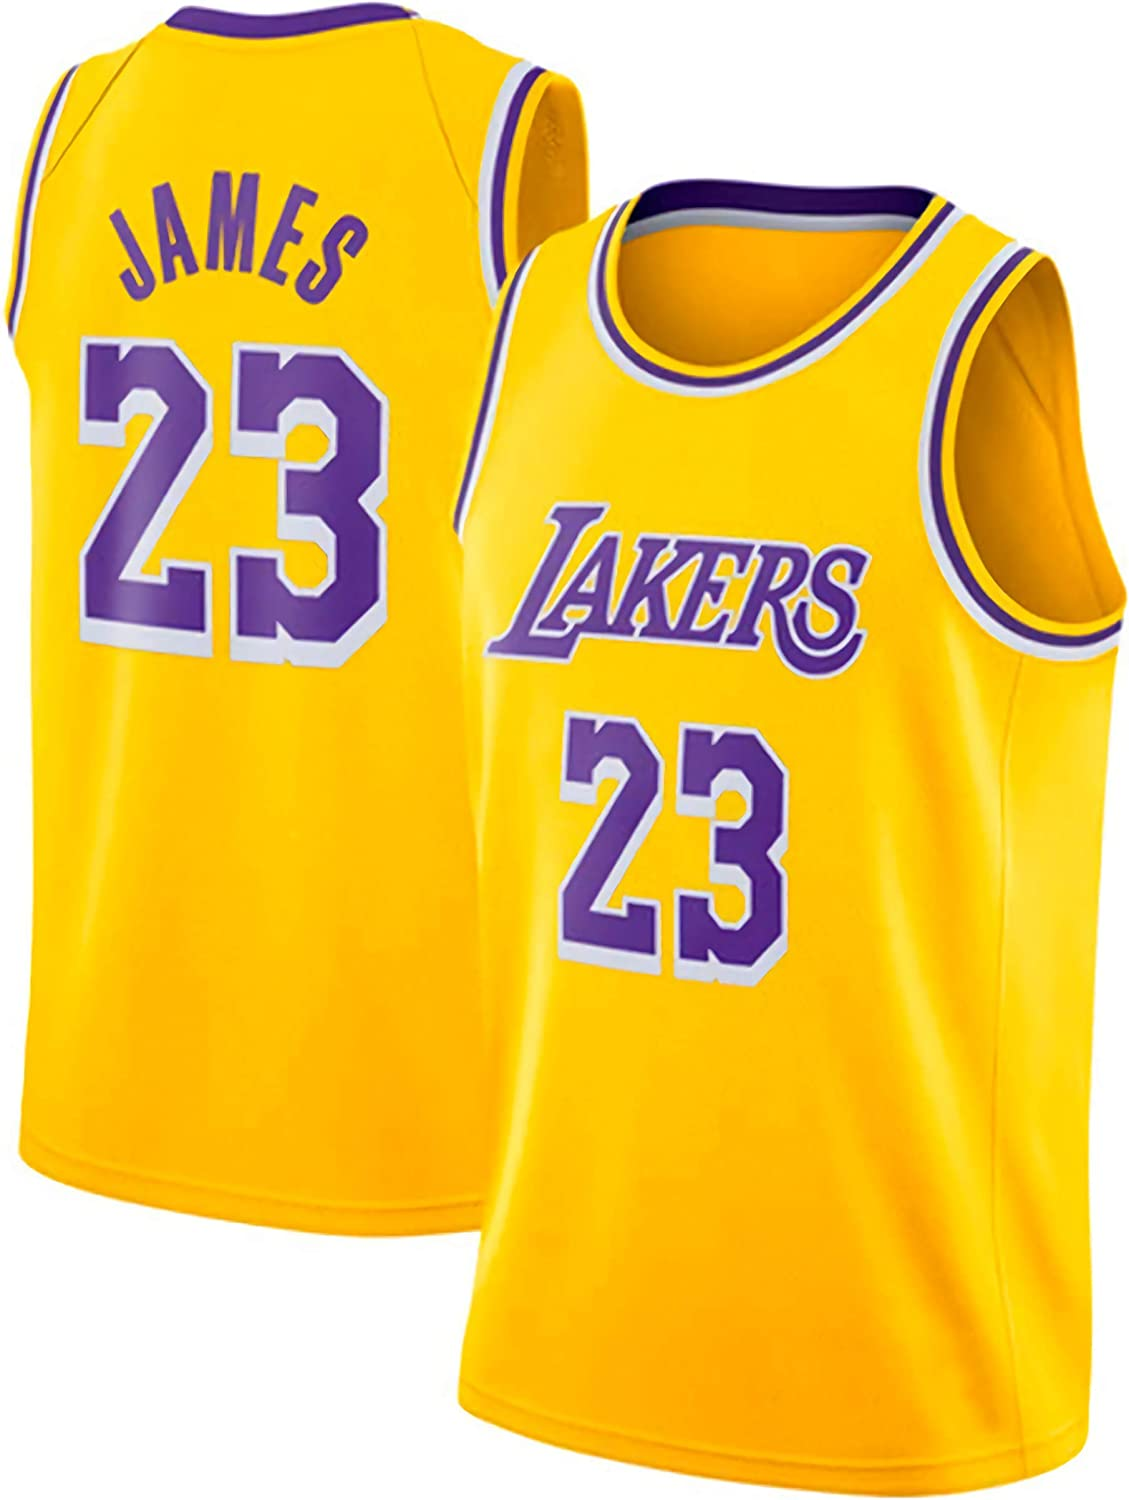 JINHAO Camiseta de Baloncesto Masculino NBA Lakers # 23 Lebron James Mesh Basketball Swingman Camiseta (Amarillo, Cuello Redondo, L): Amazon.es: Ropa y accesorios